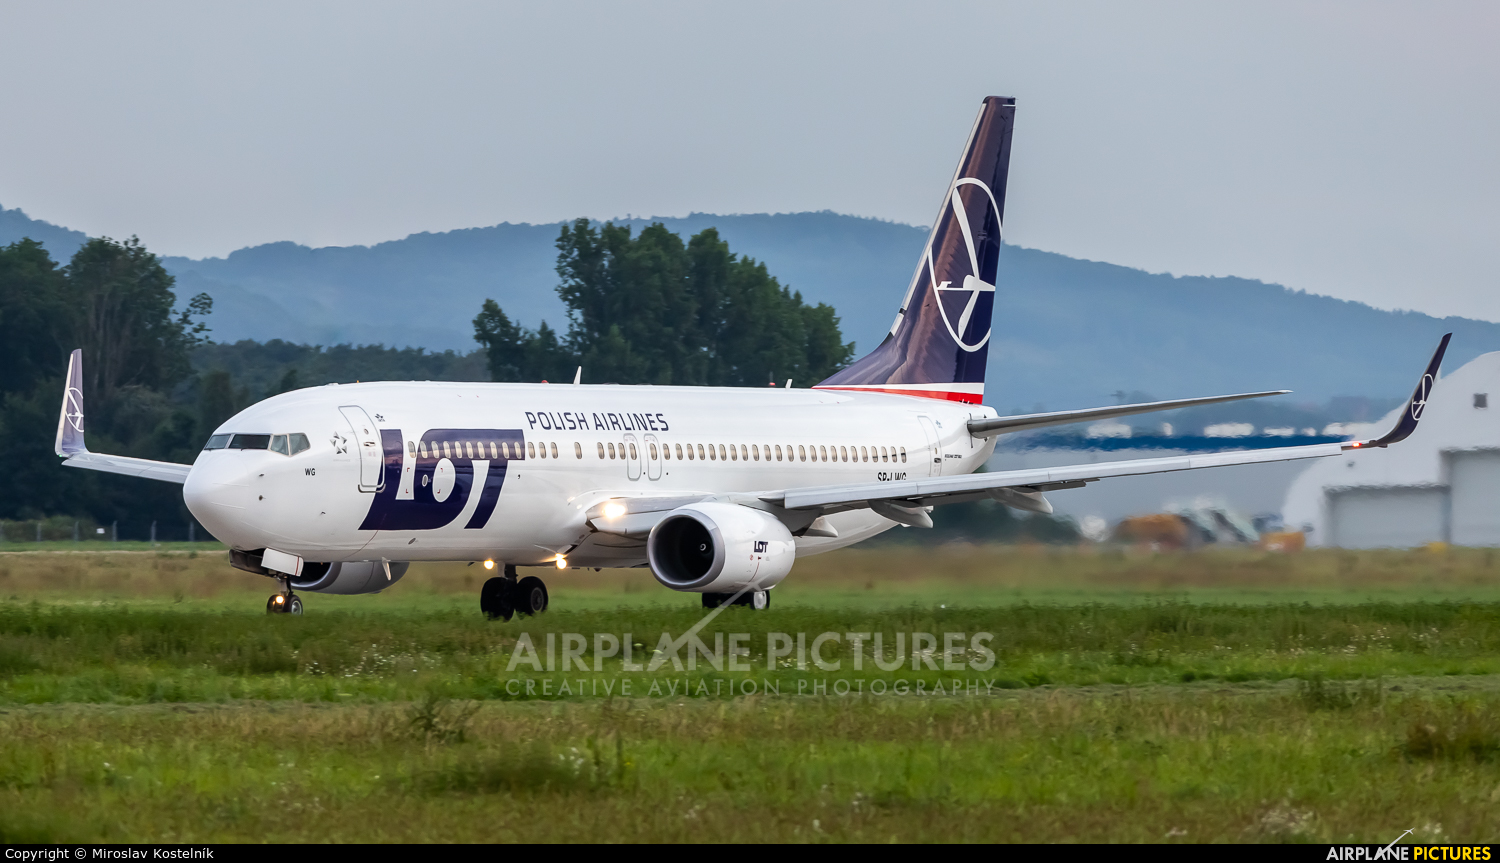 LOT - Polish Airlines SP-LWG aircraft at Ostrava Mošnov